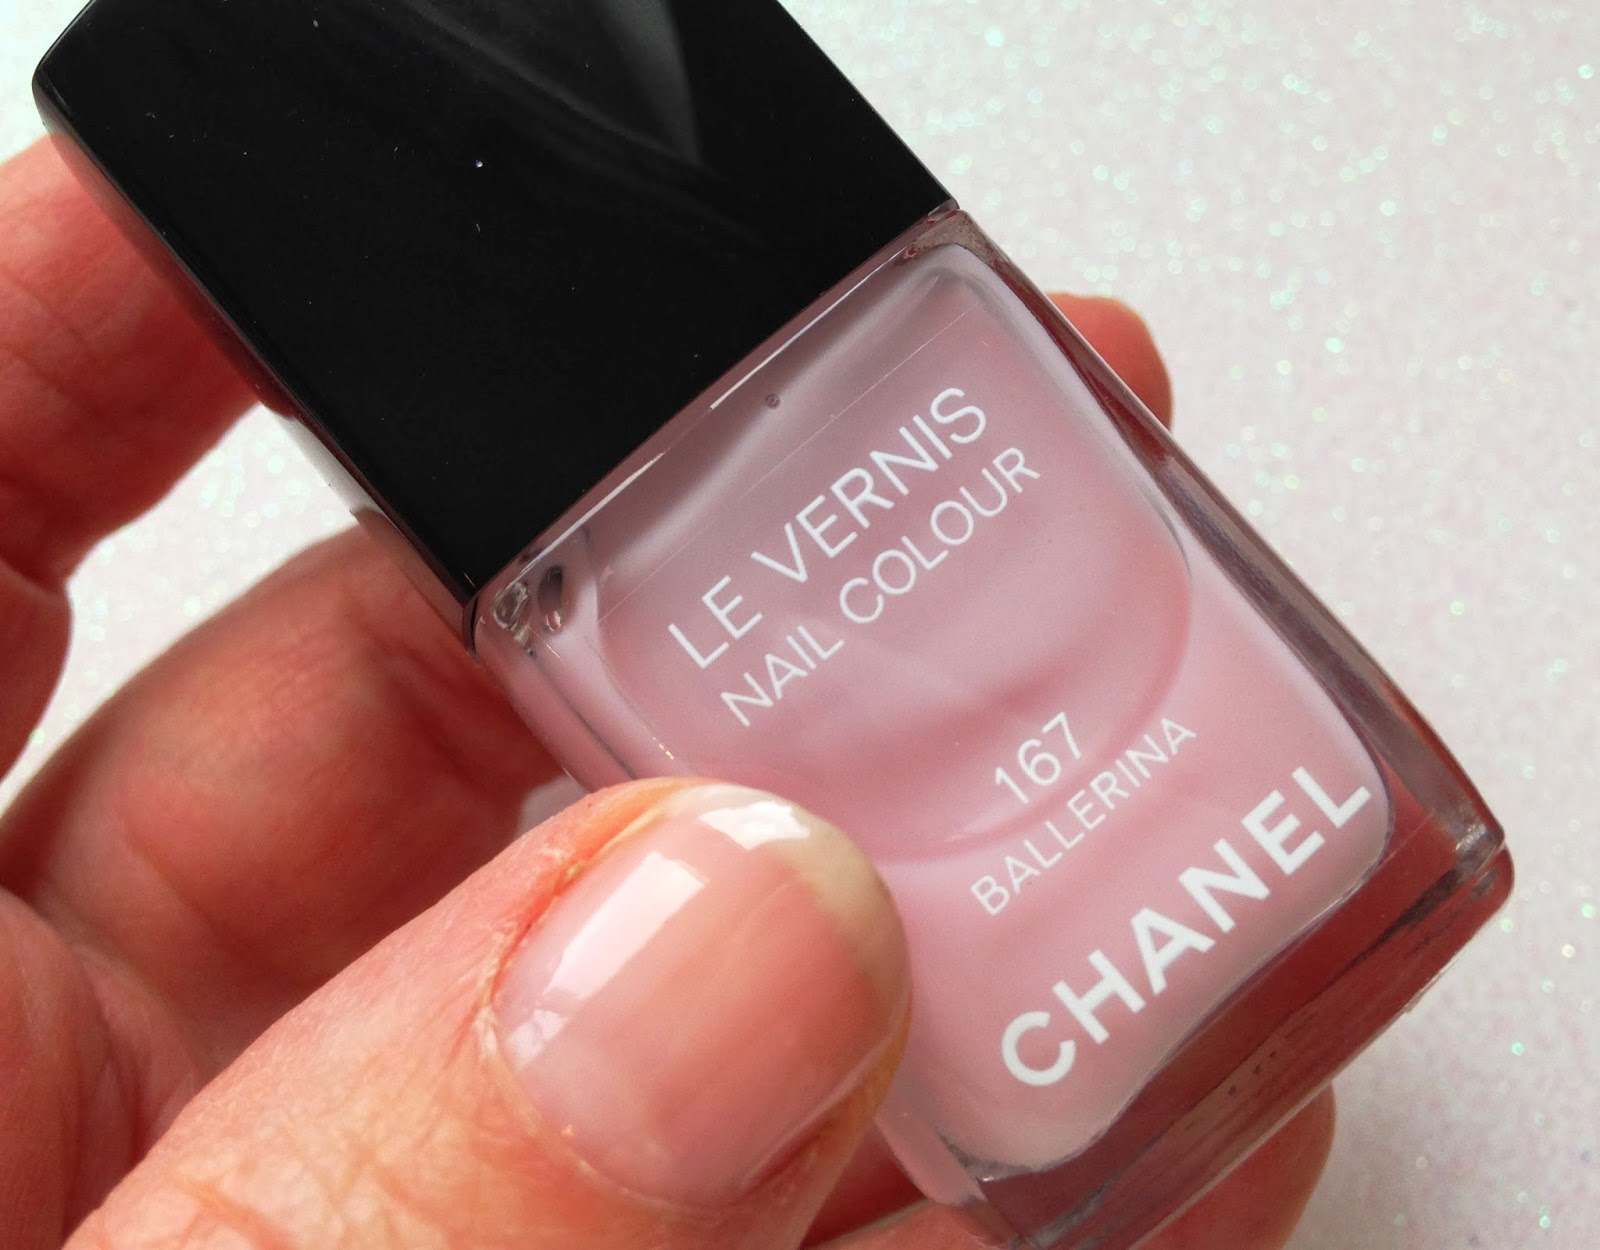 Exceptionnel Moonstone & May: Chanel Le Vernis 167 Ballerina - Re-release of a  TI21